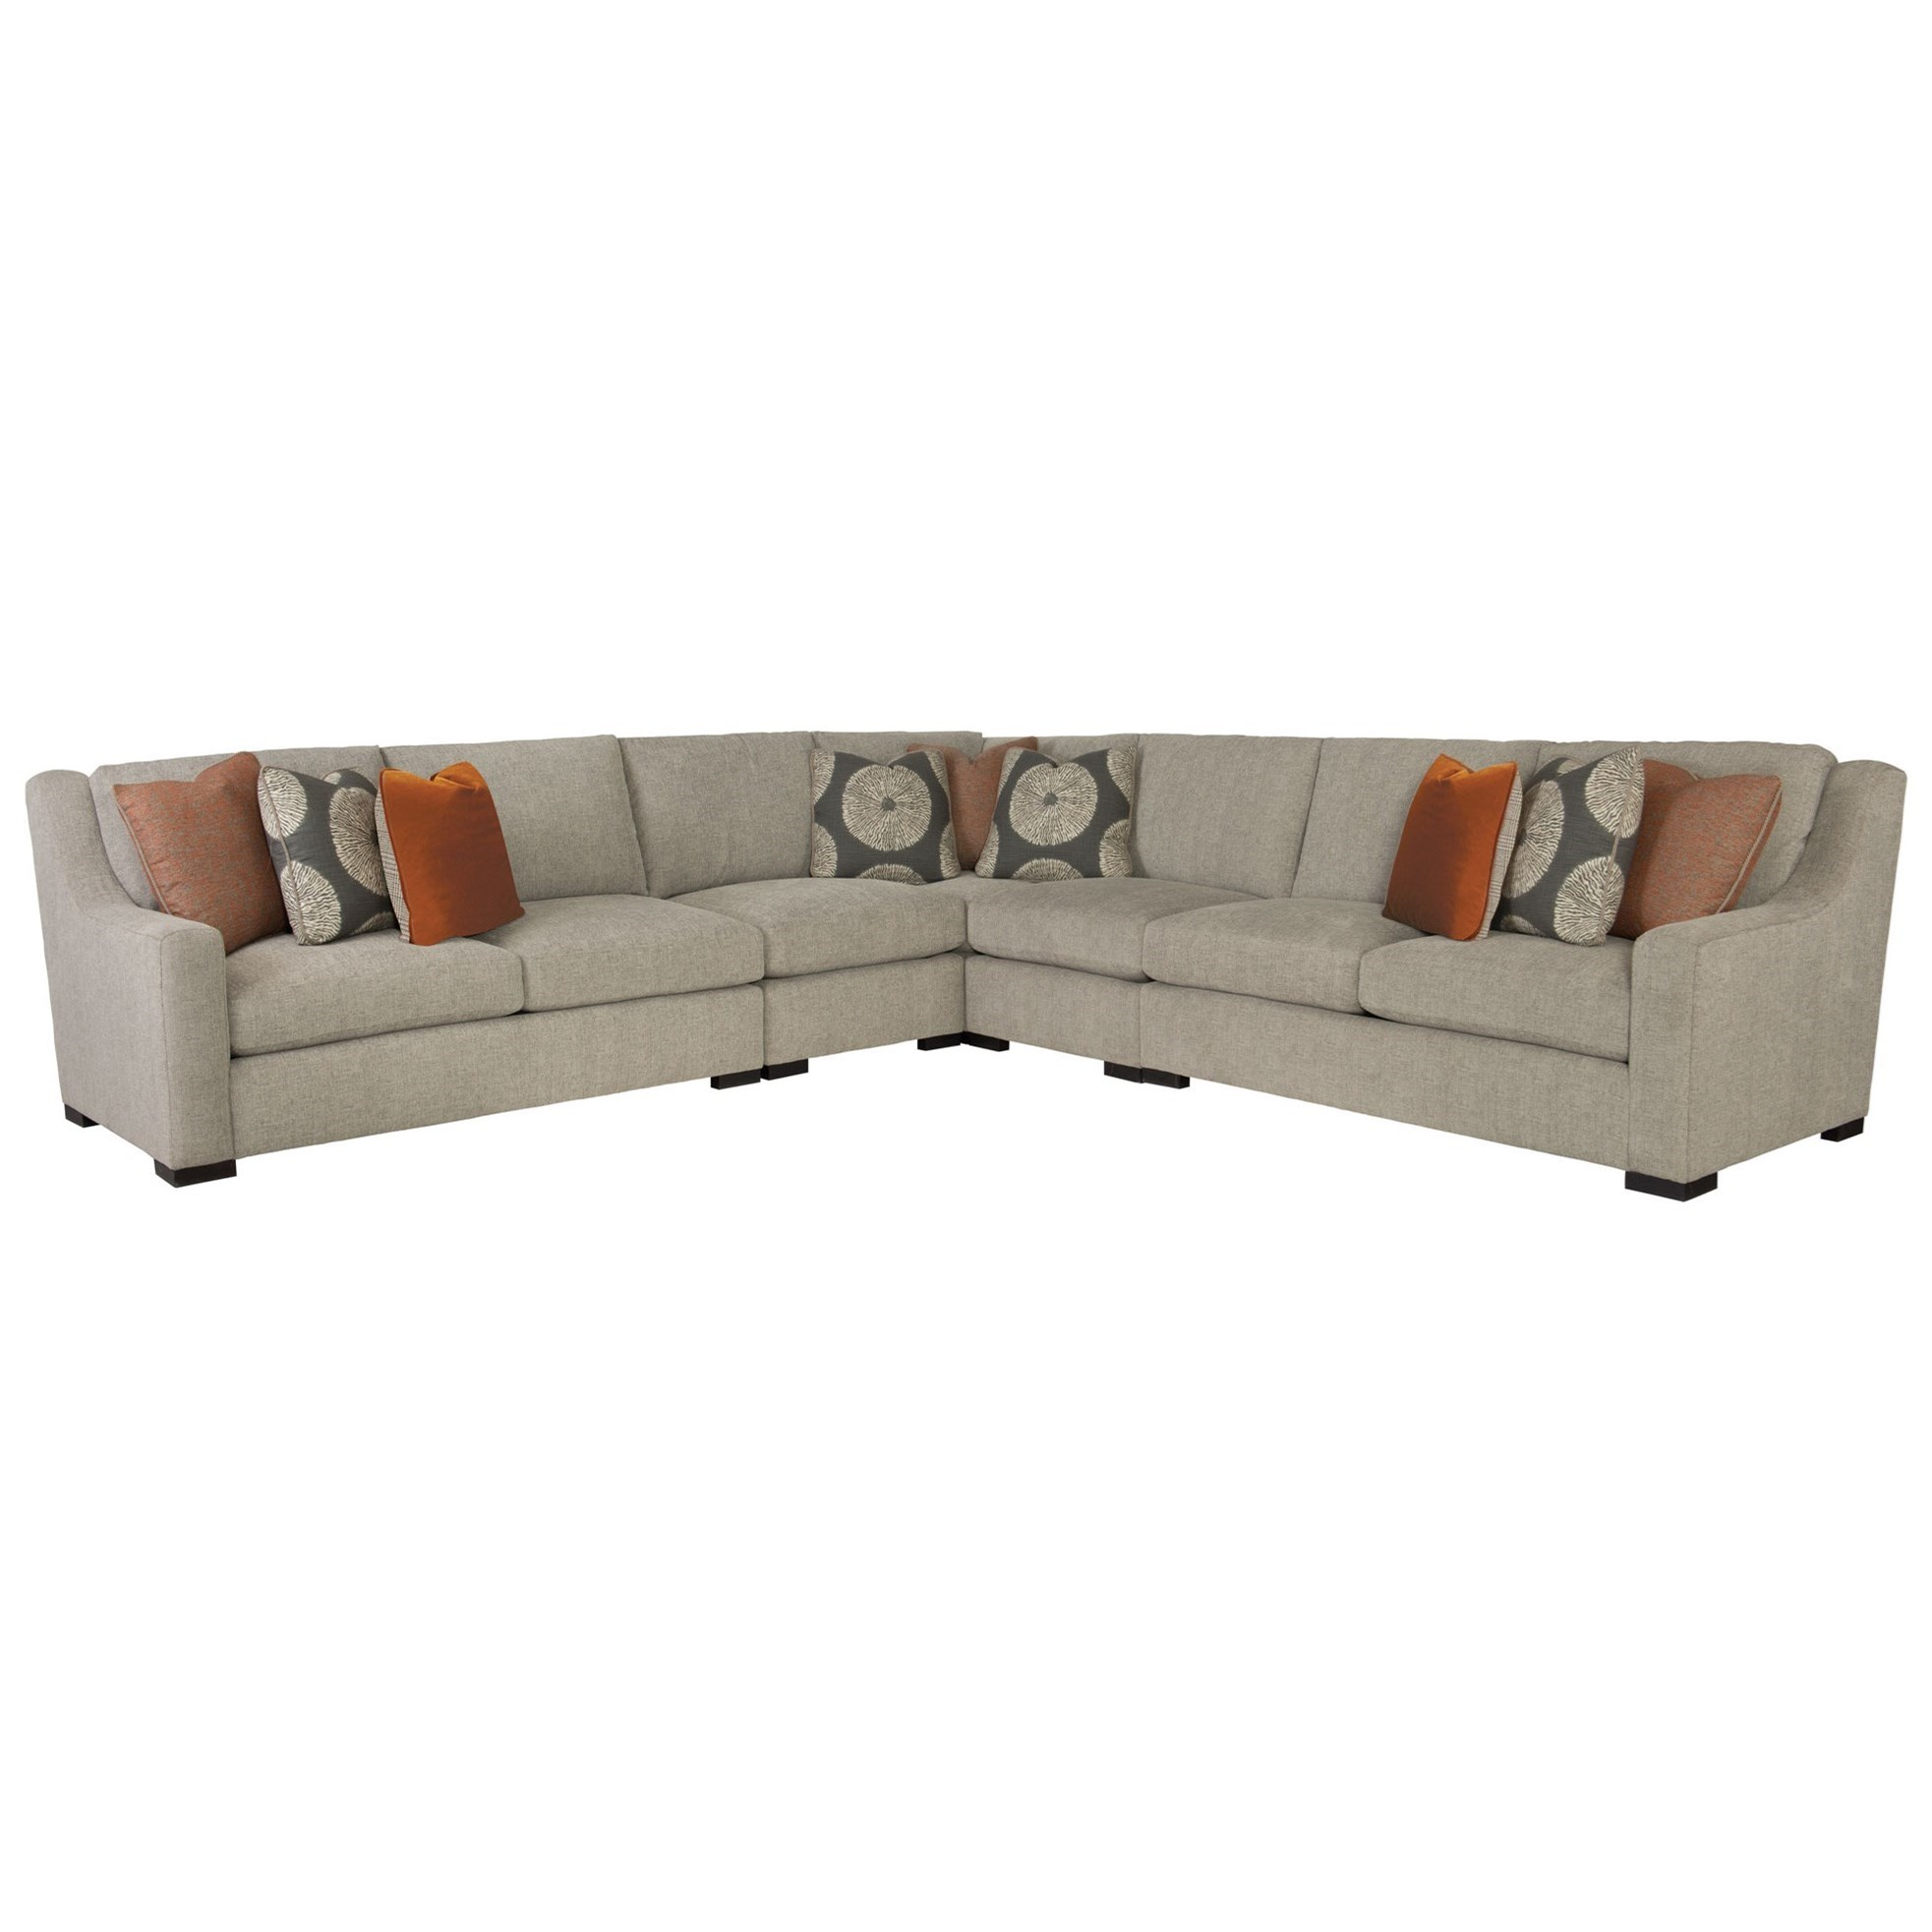 Contemporary Sectional: Bernhardt Germain Contemporary Sectional With Spring Down